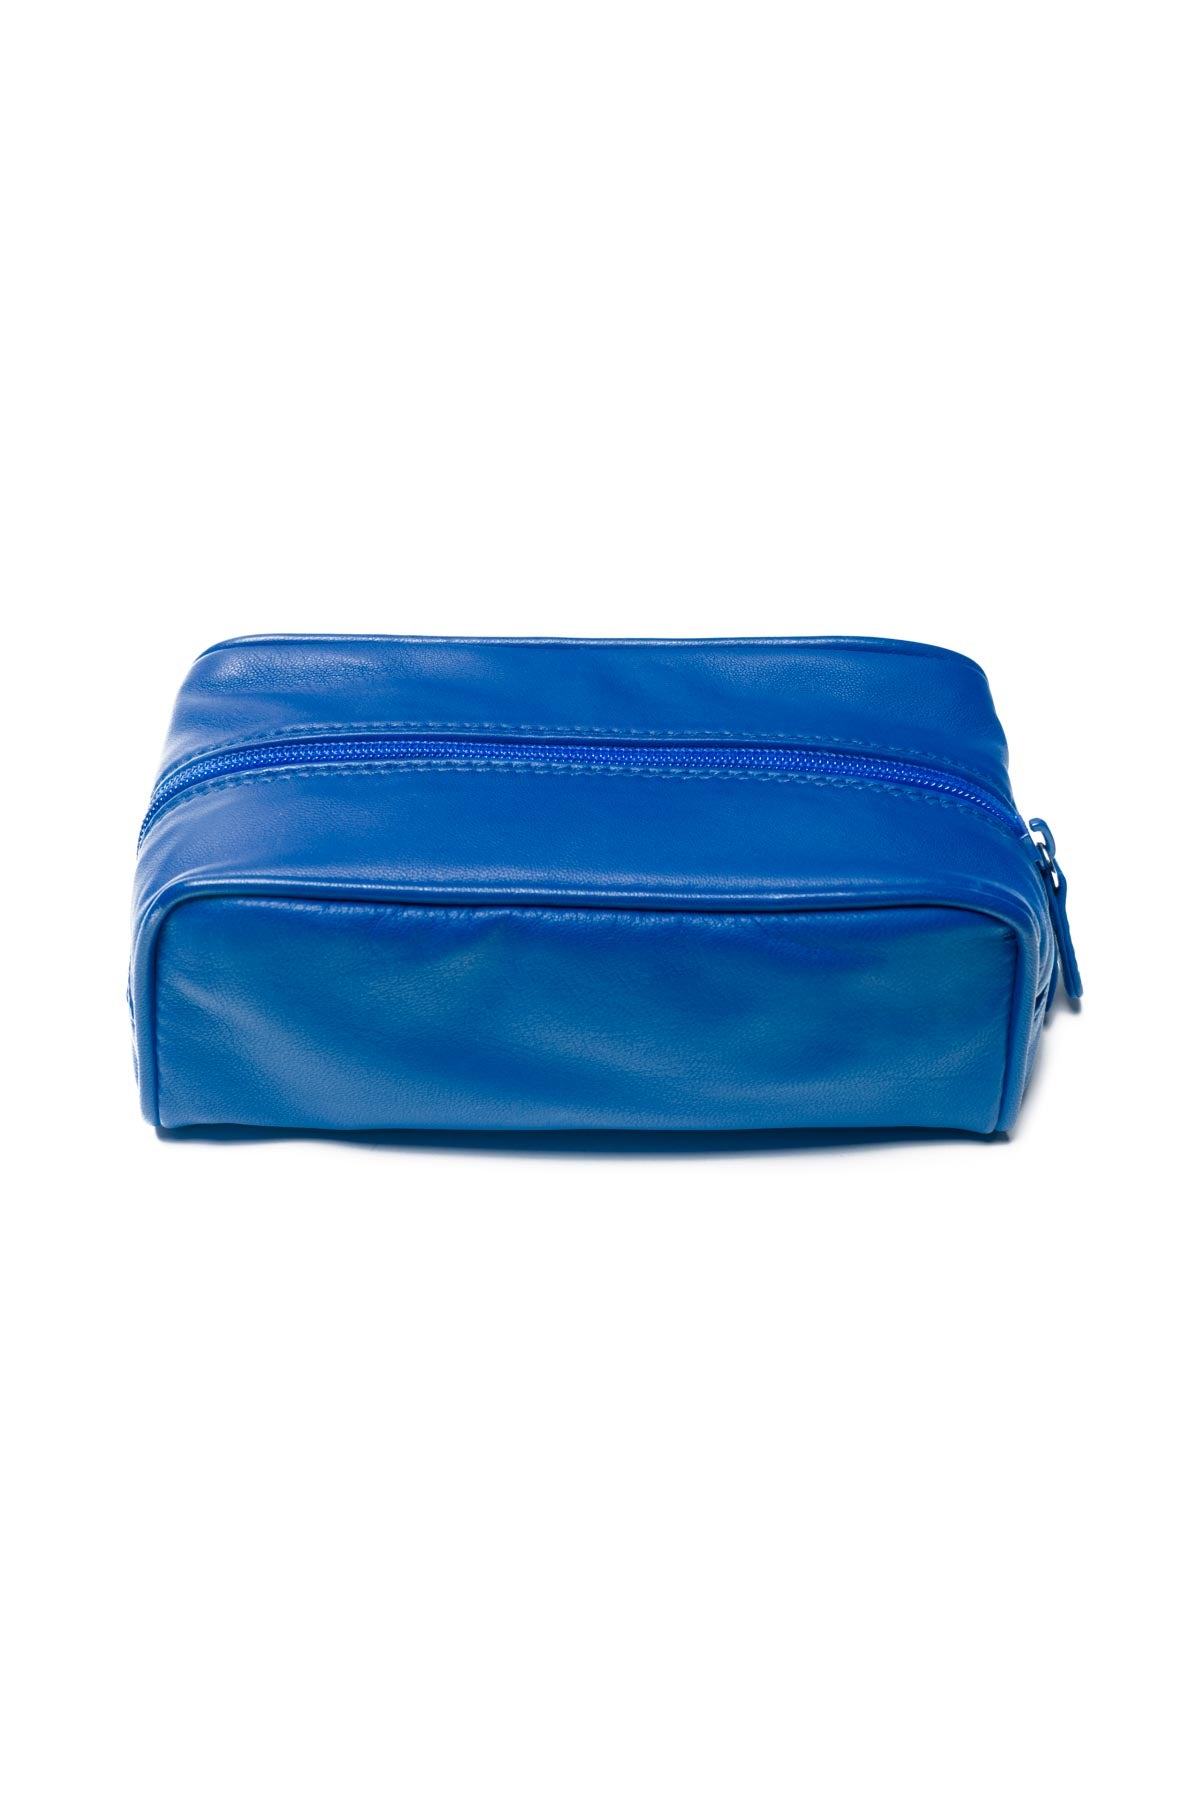 Small Leather Washbag - Blue